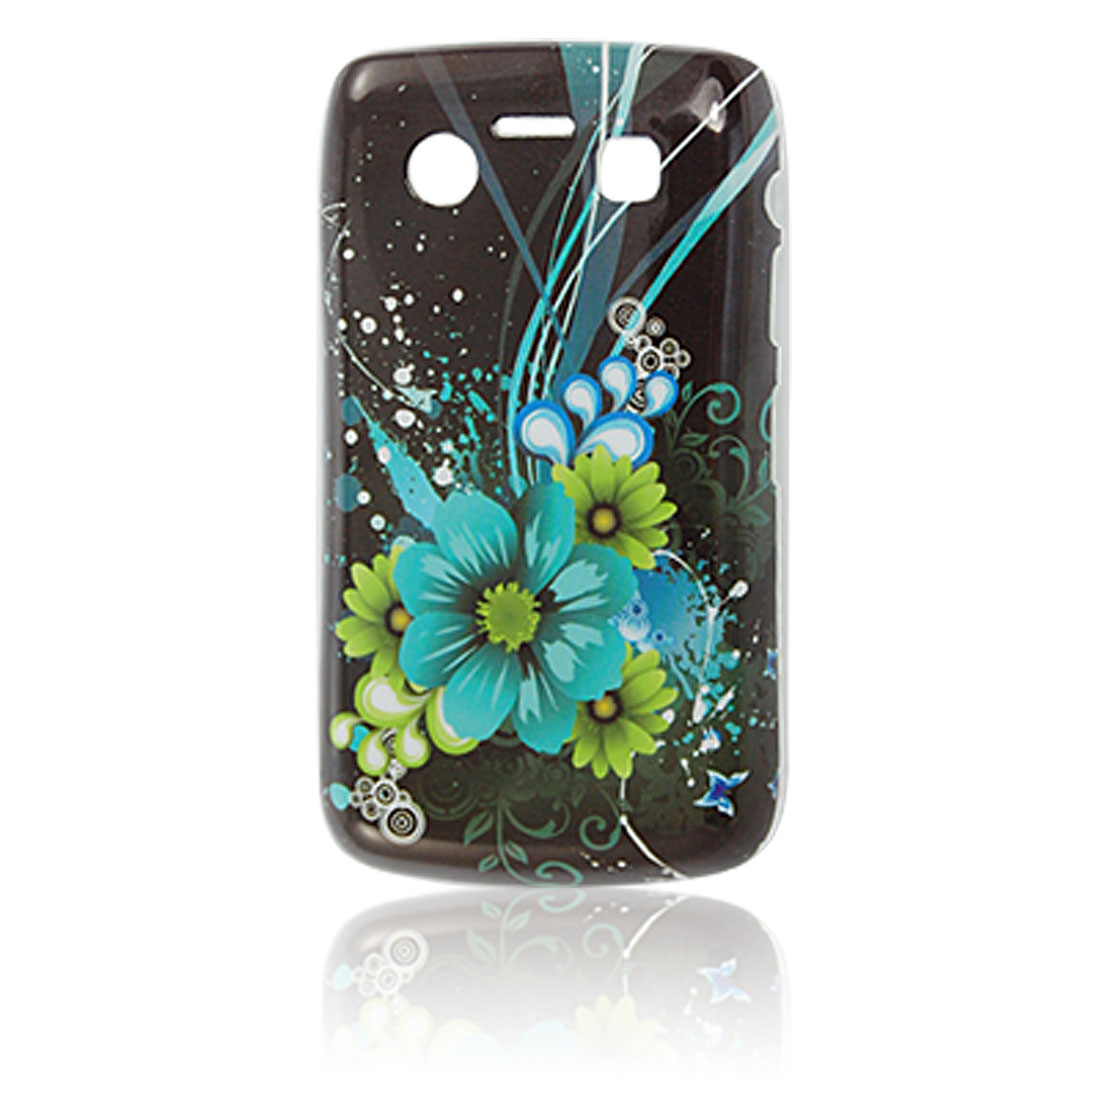 Butterfly Floral Printed Plastic IMD Back Shell for Blackberry 9700 9020